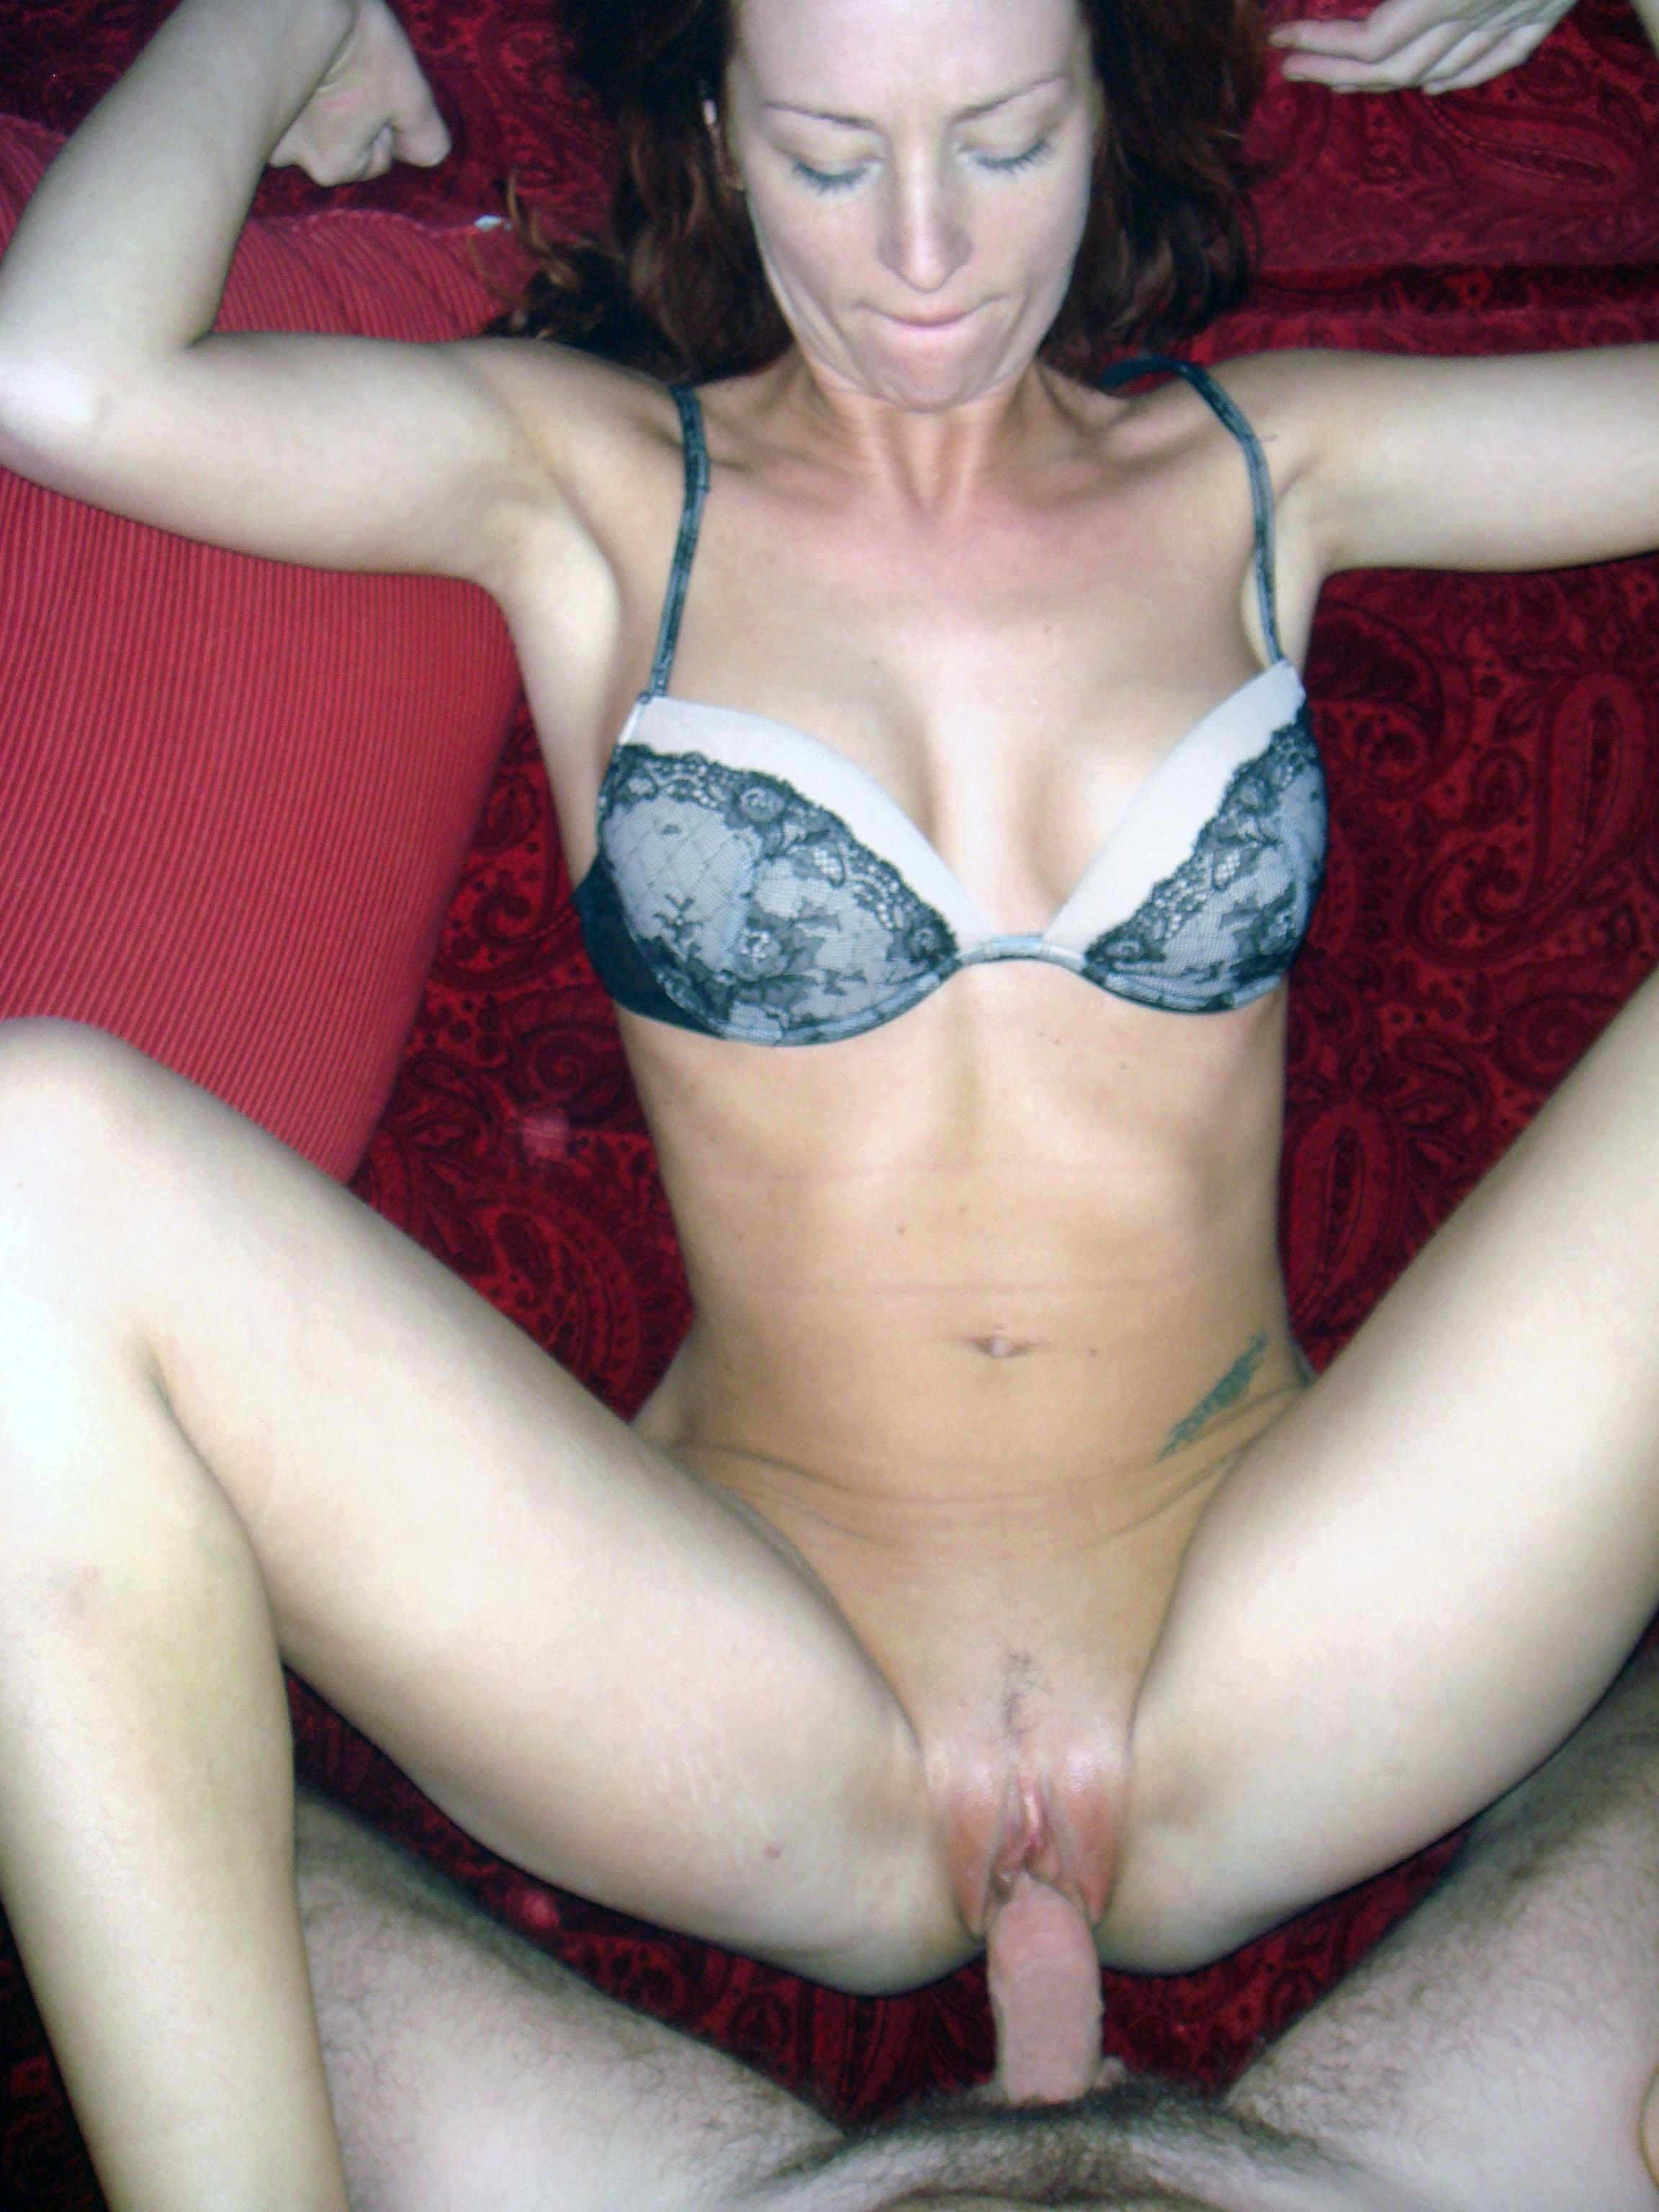 Amature sex video milf